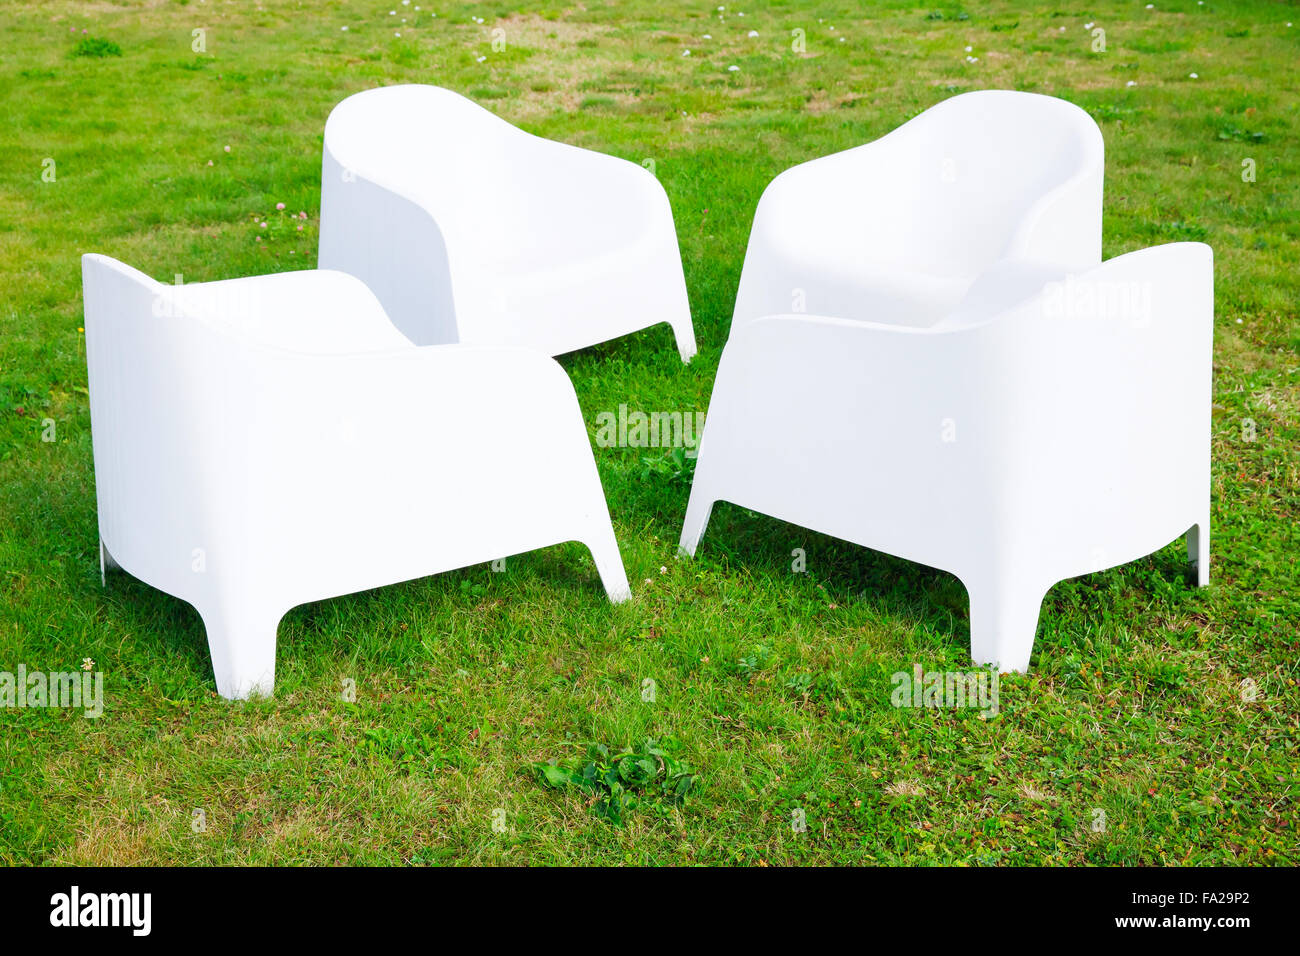 Four Modern White Plastic Chairs Stand On Fresh Green Grass Stock Photo Alamy